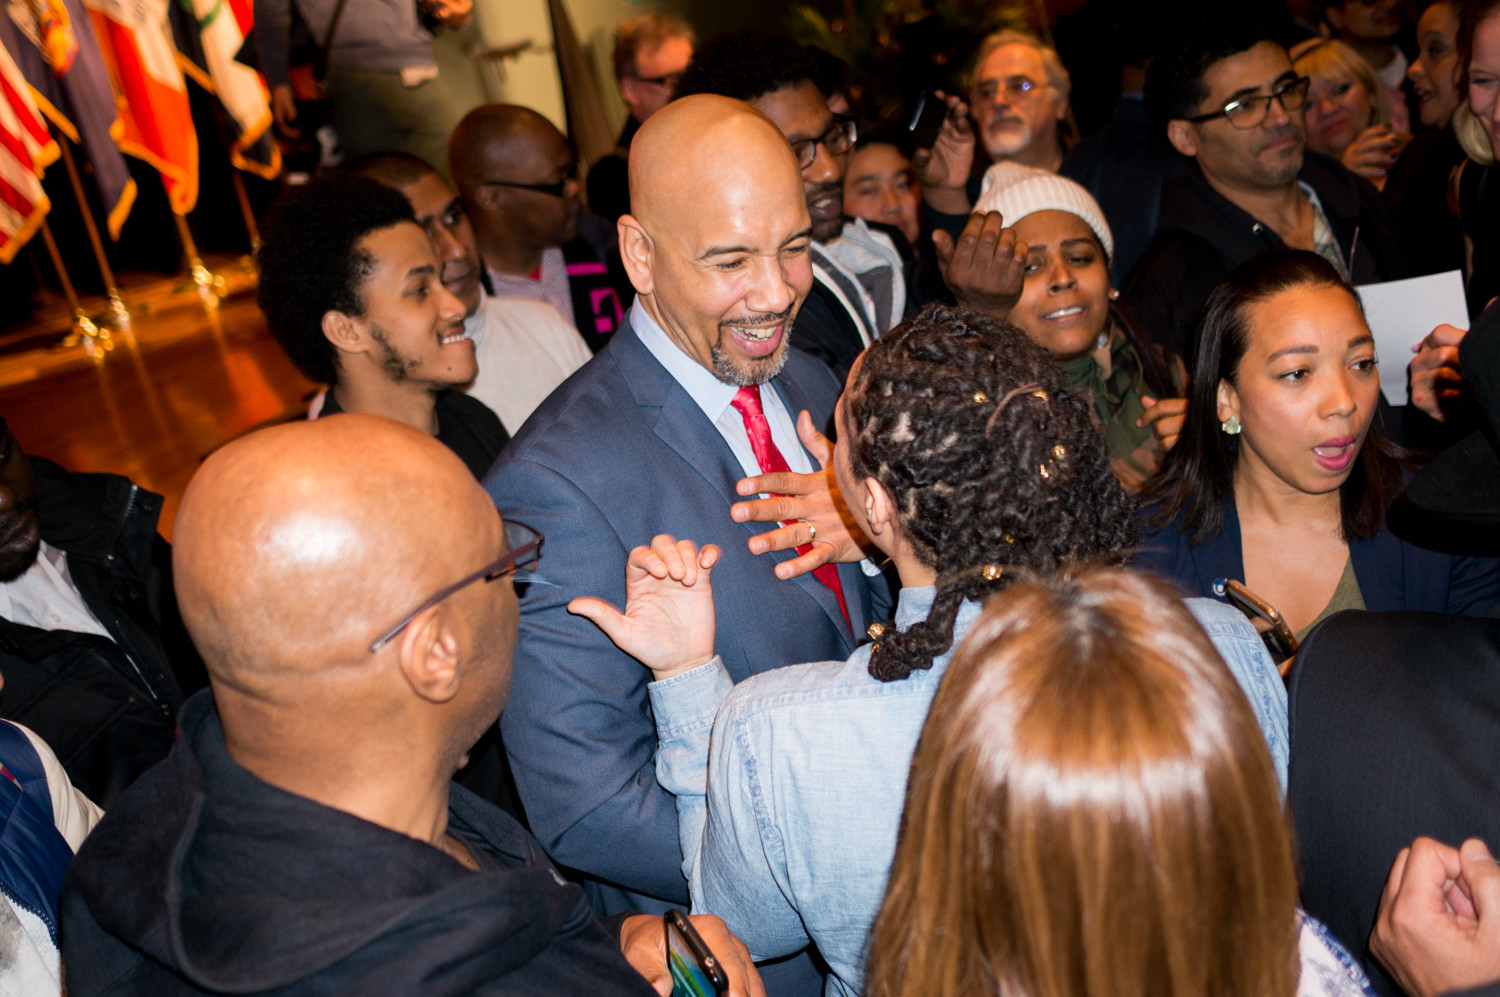 Bronx borough president Ruben Diaz Jr., speaks with audience members after the state of the borough address at the Bronx High School of Science last week.